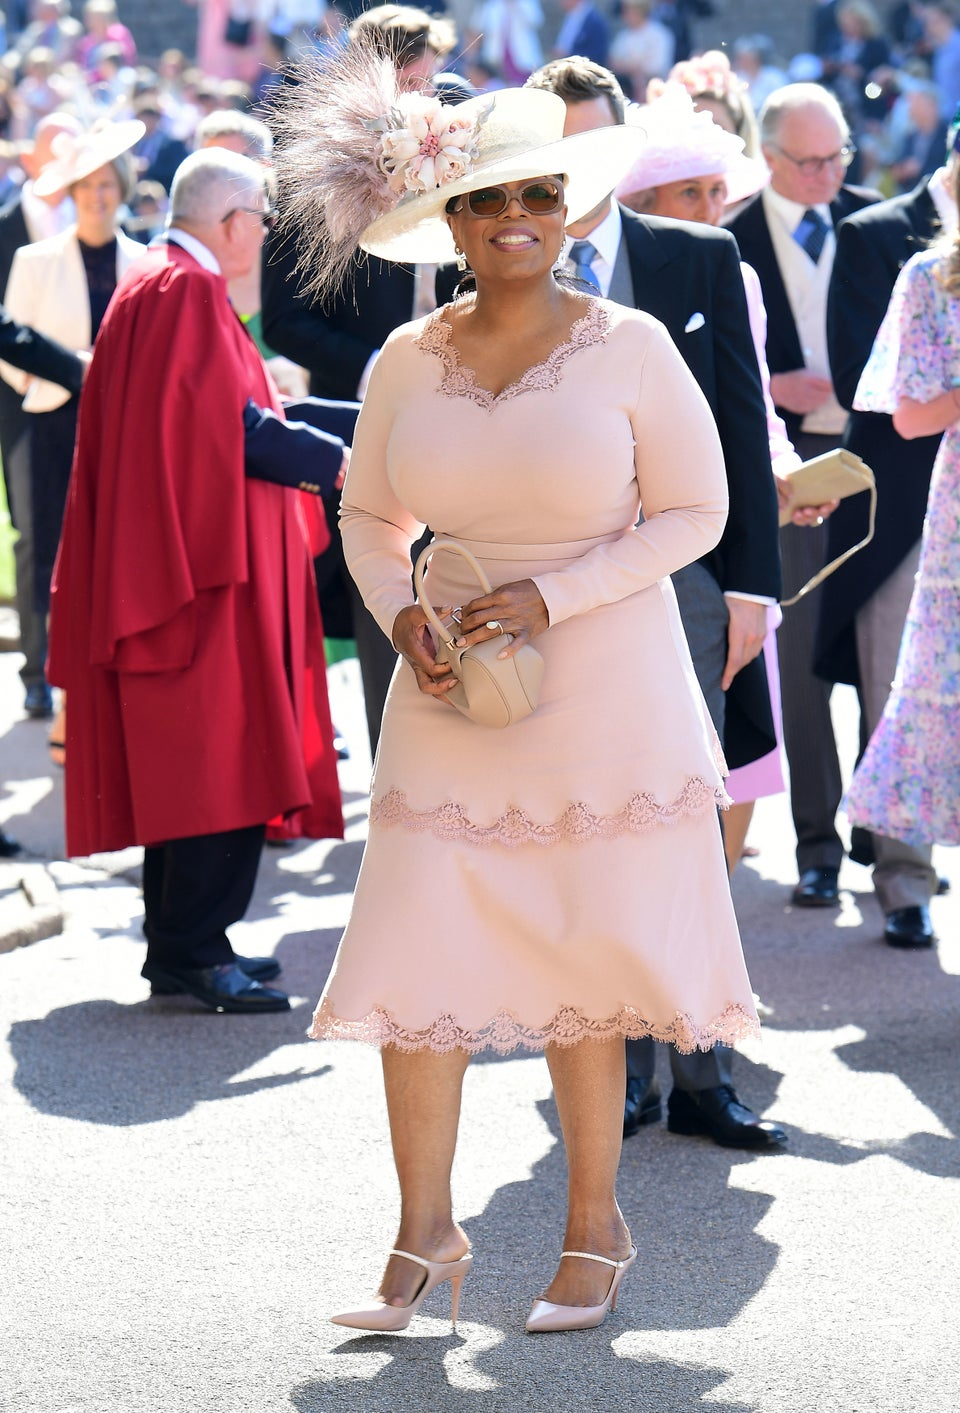 Oprah Winfrey Had To Switch Her Dress Last Minute To Prevent Royal Wedding Faux Pas